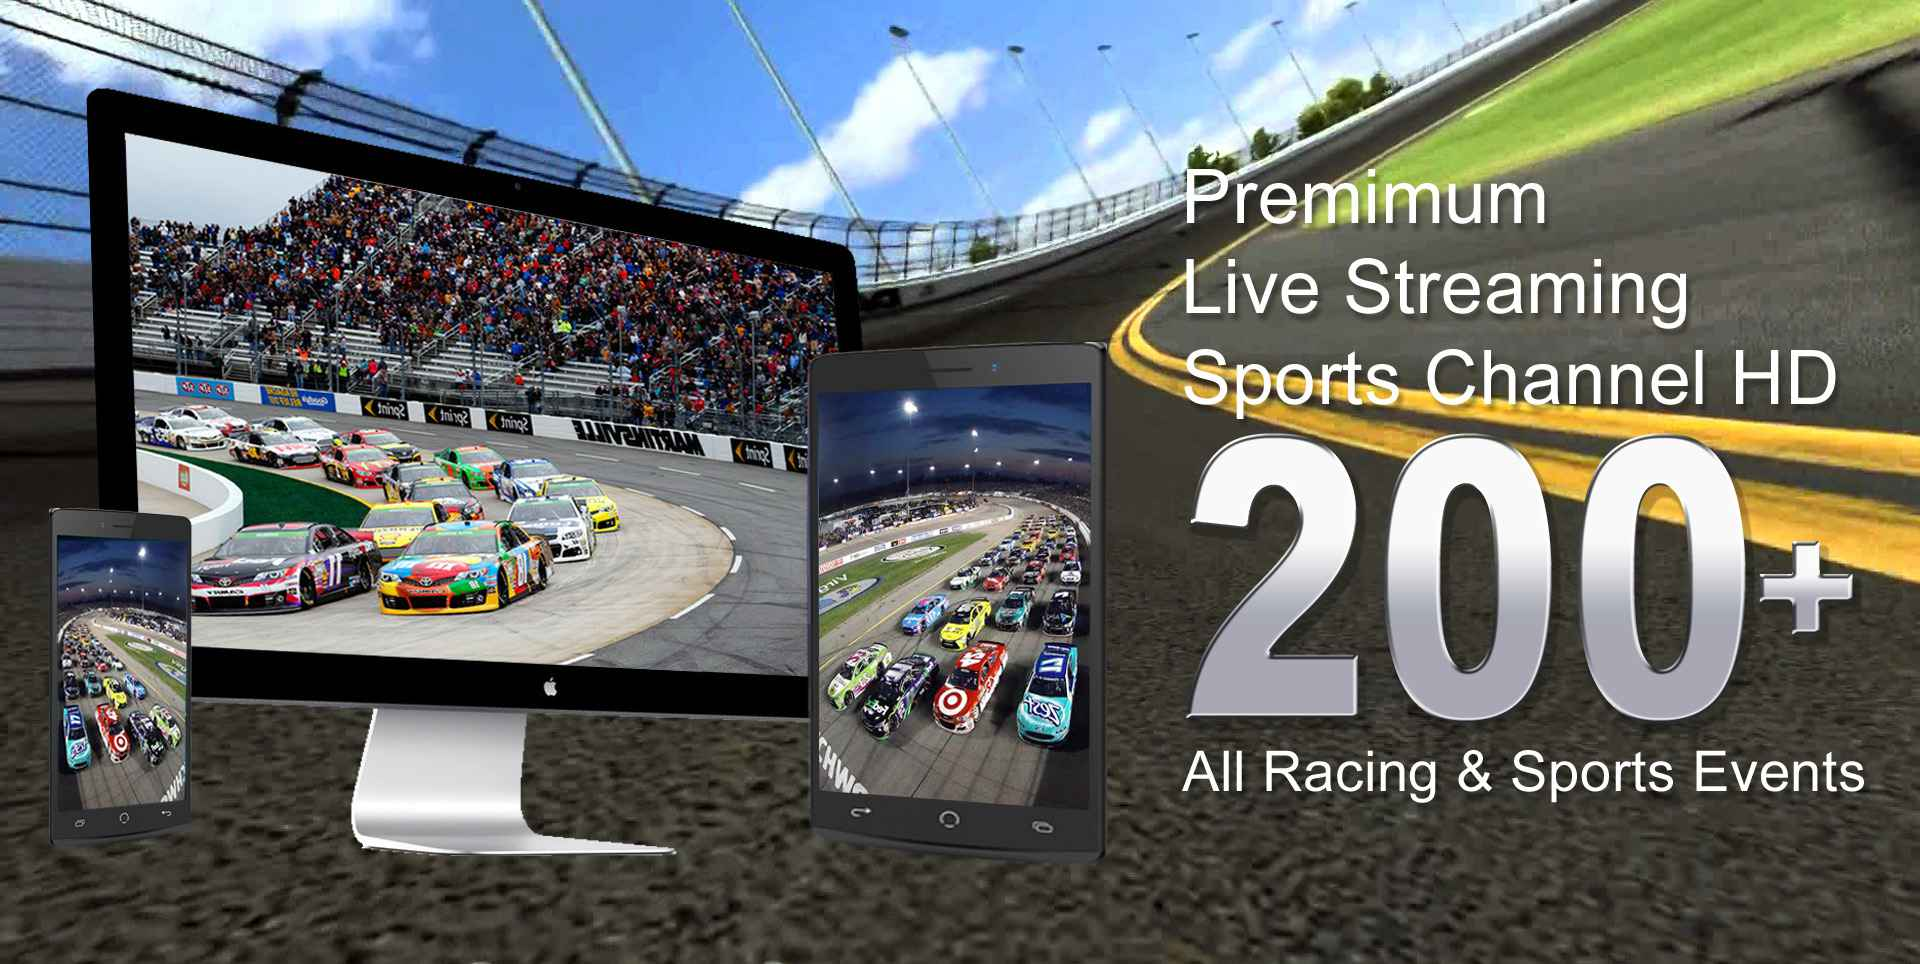 Striping Technology 350 Truck Series live